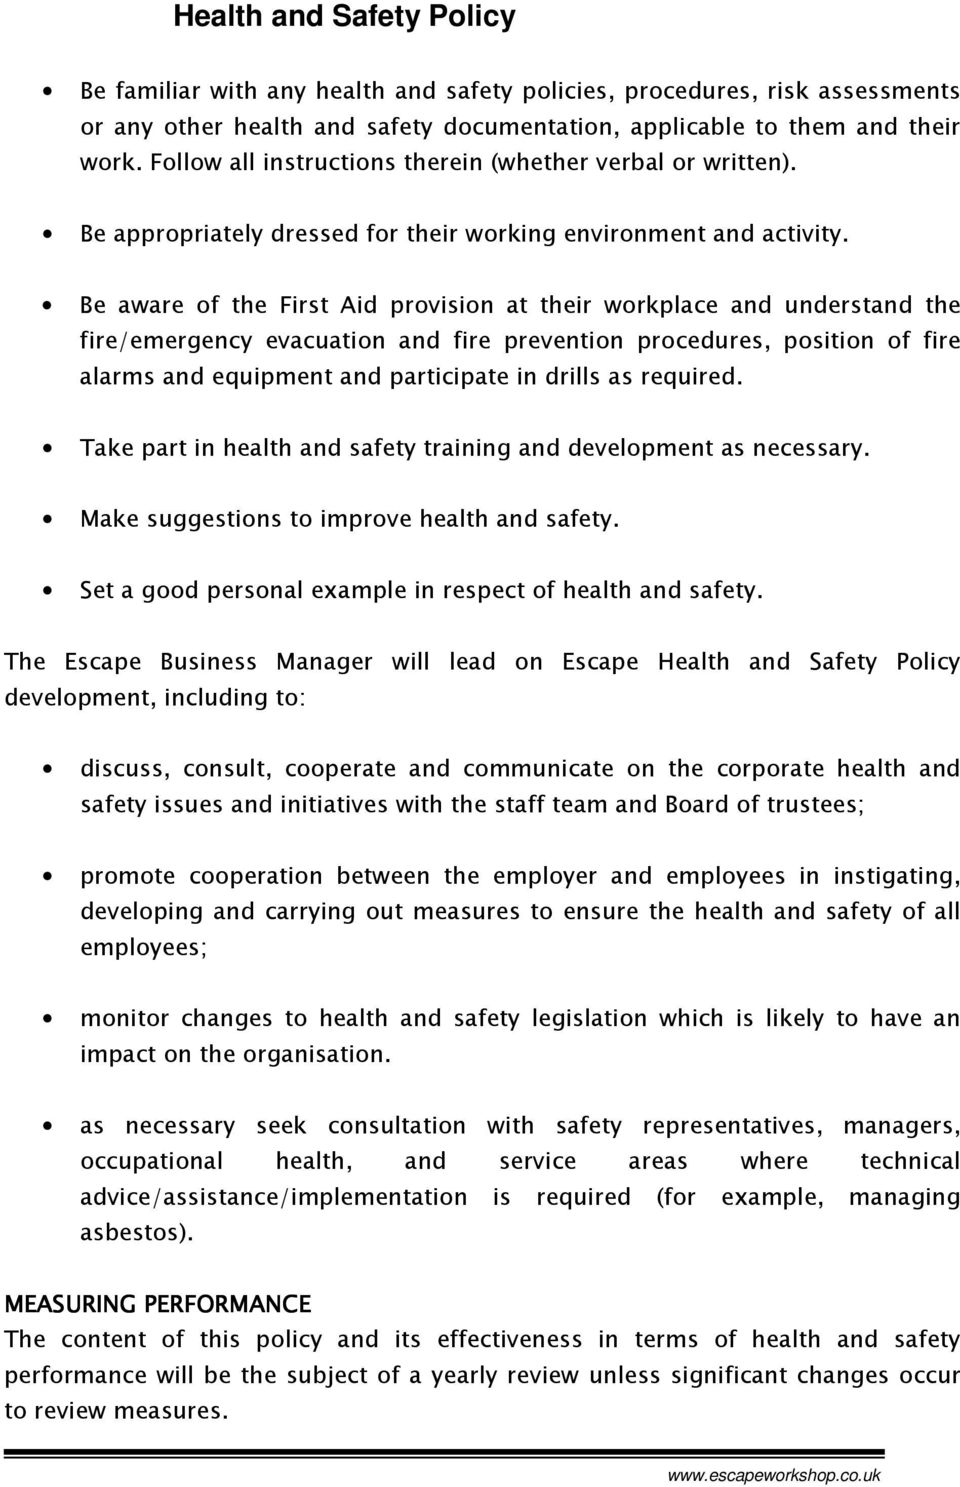 health and safety review checklist